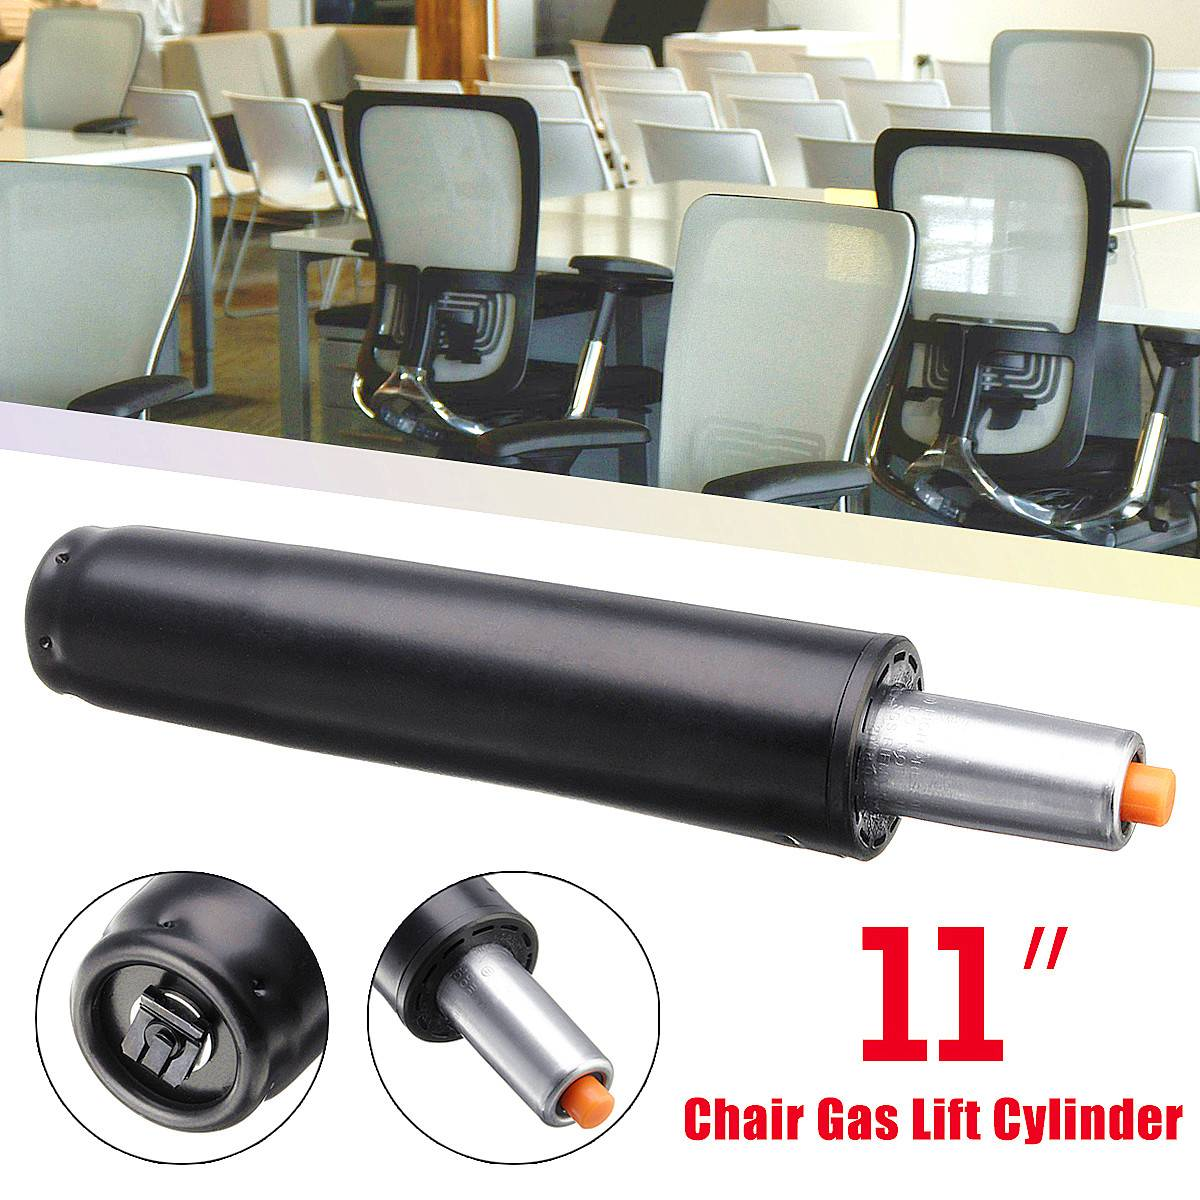 Heavy   11'' Pneumatic Rod Gas Lift Cylinder Chair Replacement Accessories For General Office Chairs Bar Computer Chairs